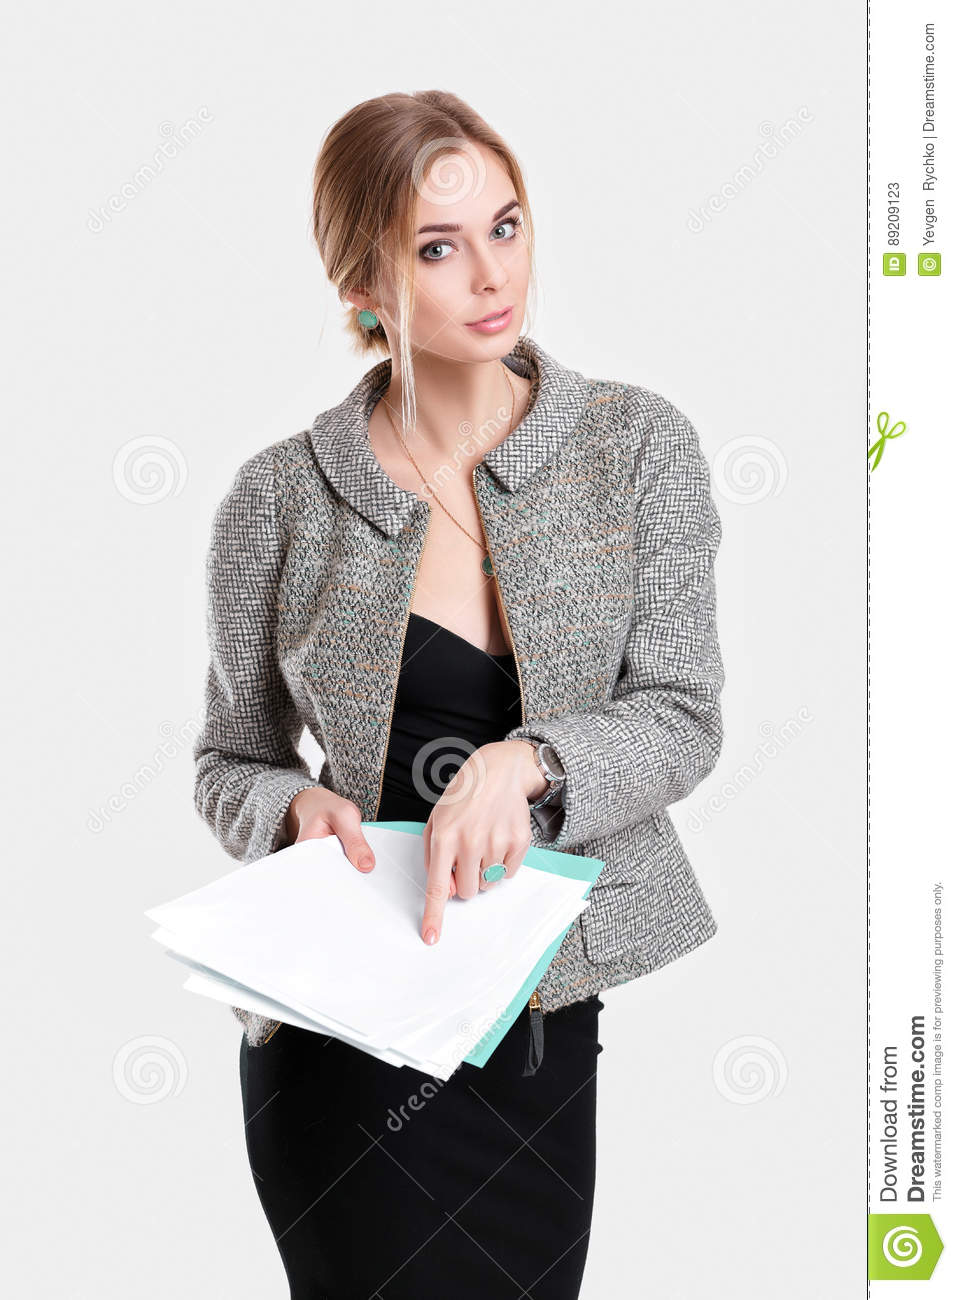 Young beautiful business woman in black dress, jacket holding folder of papers and smiling on gray background